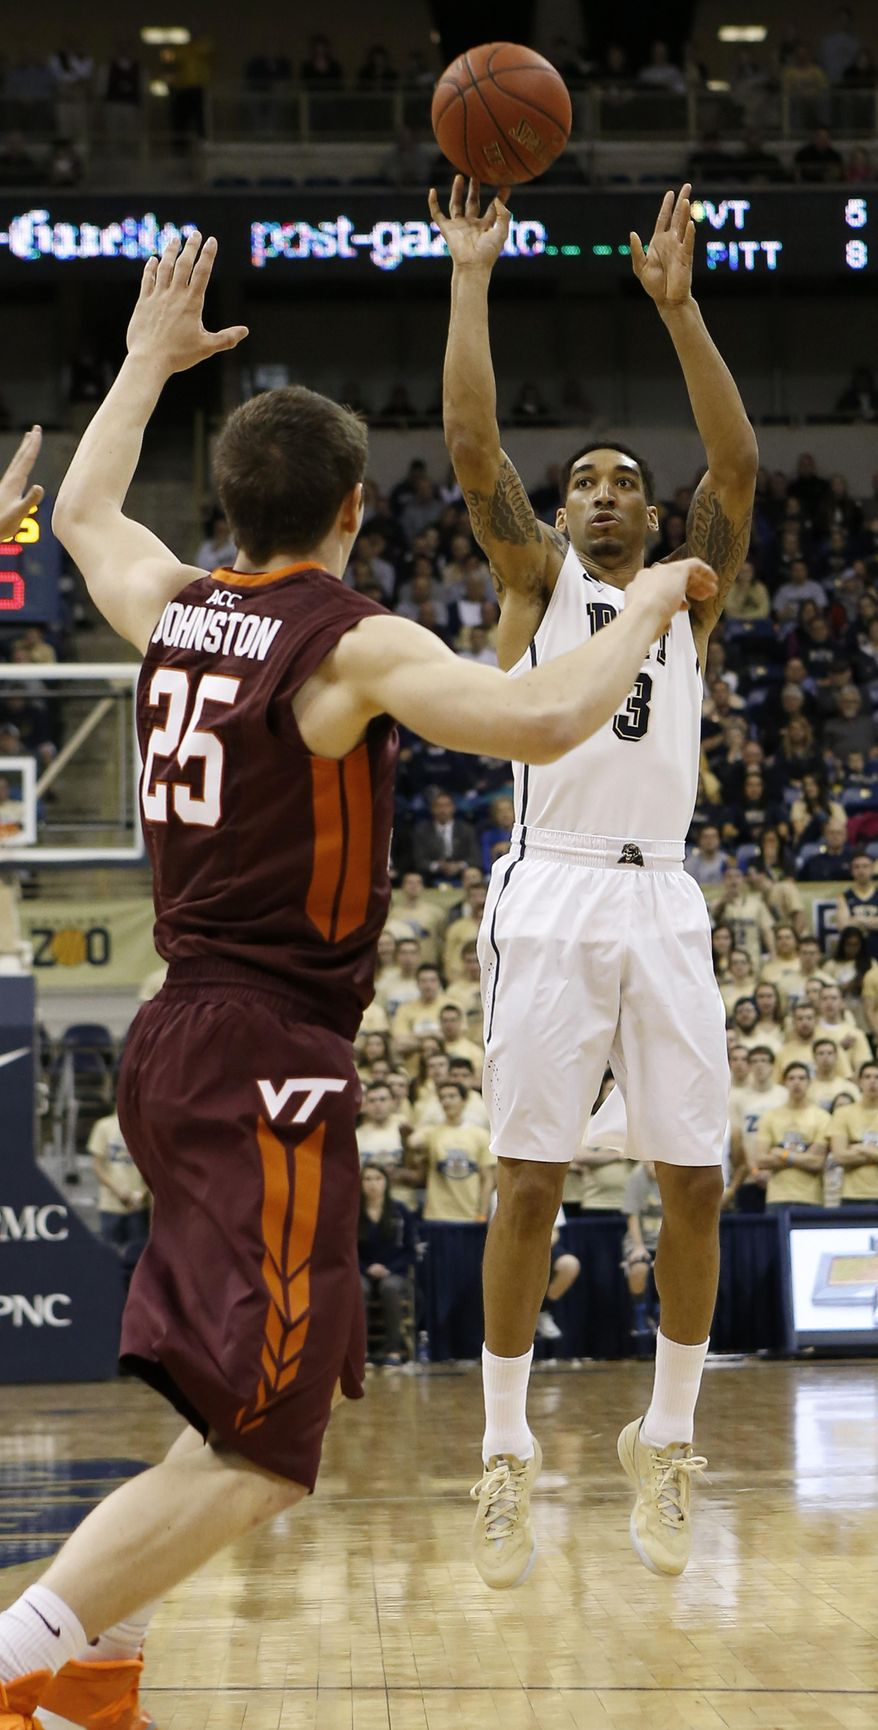 Pittsburgh's Cameron Wright (3) hits a 3-point shot over Virginia Tech's Will Johnston (25) during the first half of the NCAA college basketball game on Saturday, Feb. 8, 2014, in Pittsburgh. (AP Photo/Keith Srakocic)